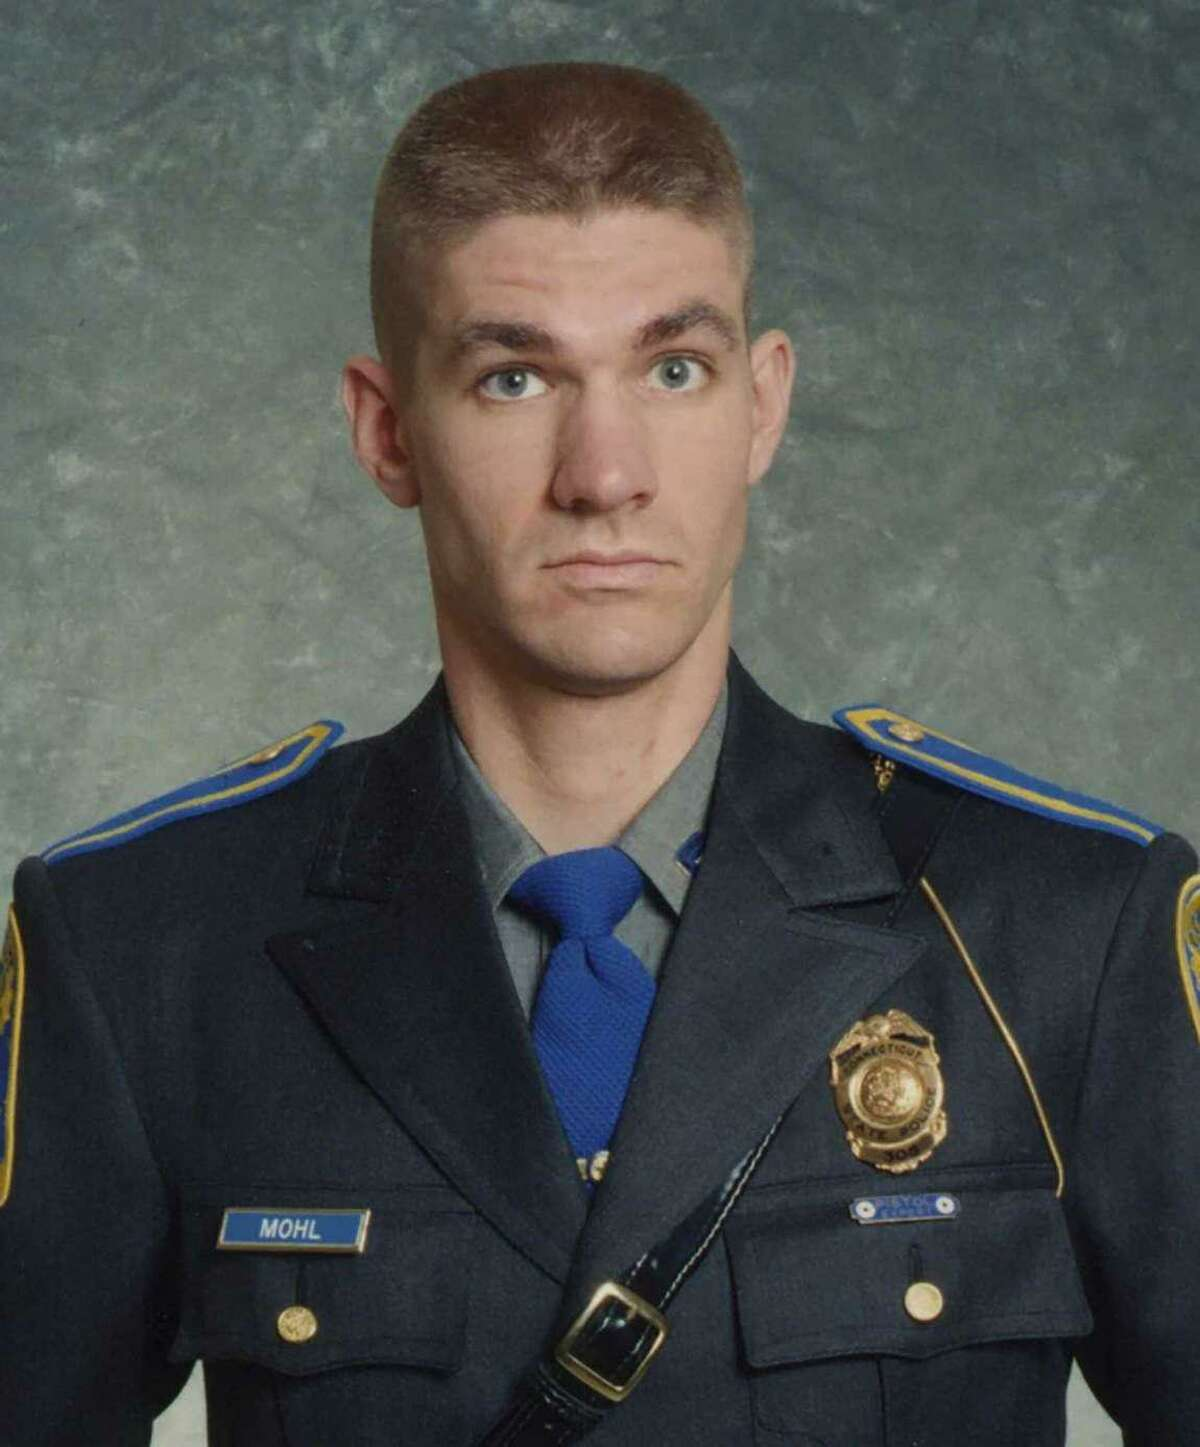 Sgt. Brian Mohl was swept away by fast-rising waters during Hurricane Ida early in the morning of Sept. 2, 2021. His funeral service will be held later this week. Burial service will be private, his funeral home said.